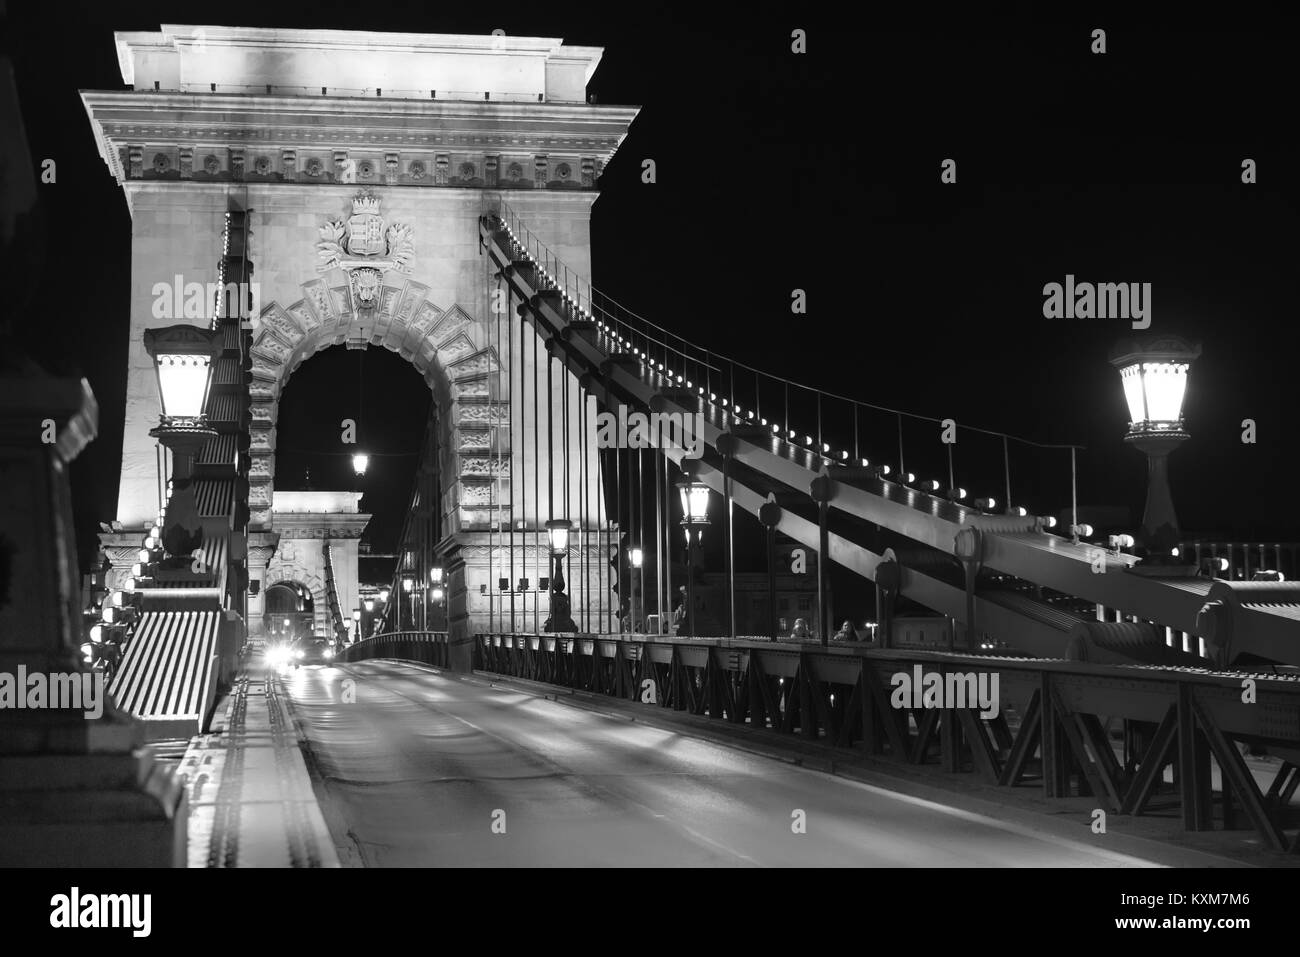 Famous Chain bridge in Budapest at night in black and white - Stock Image